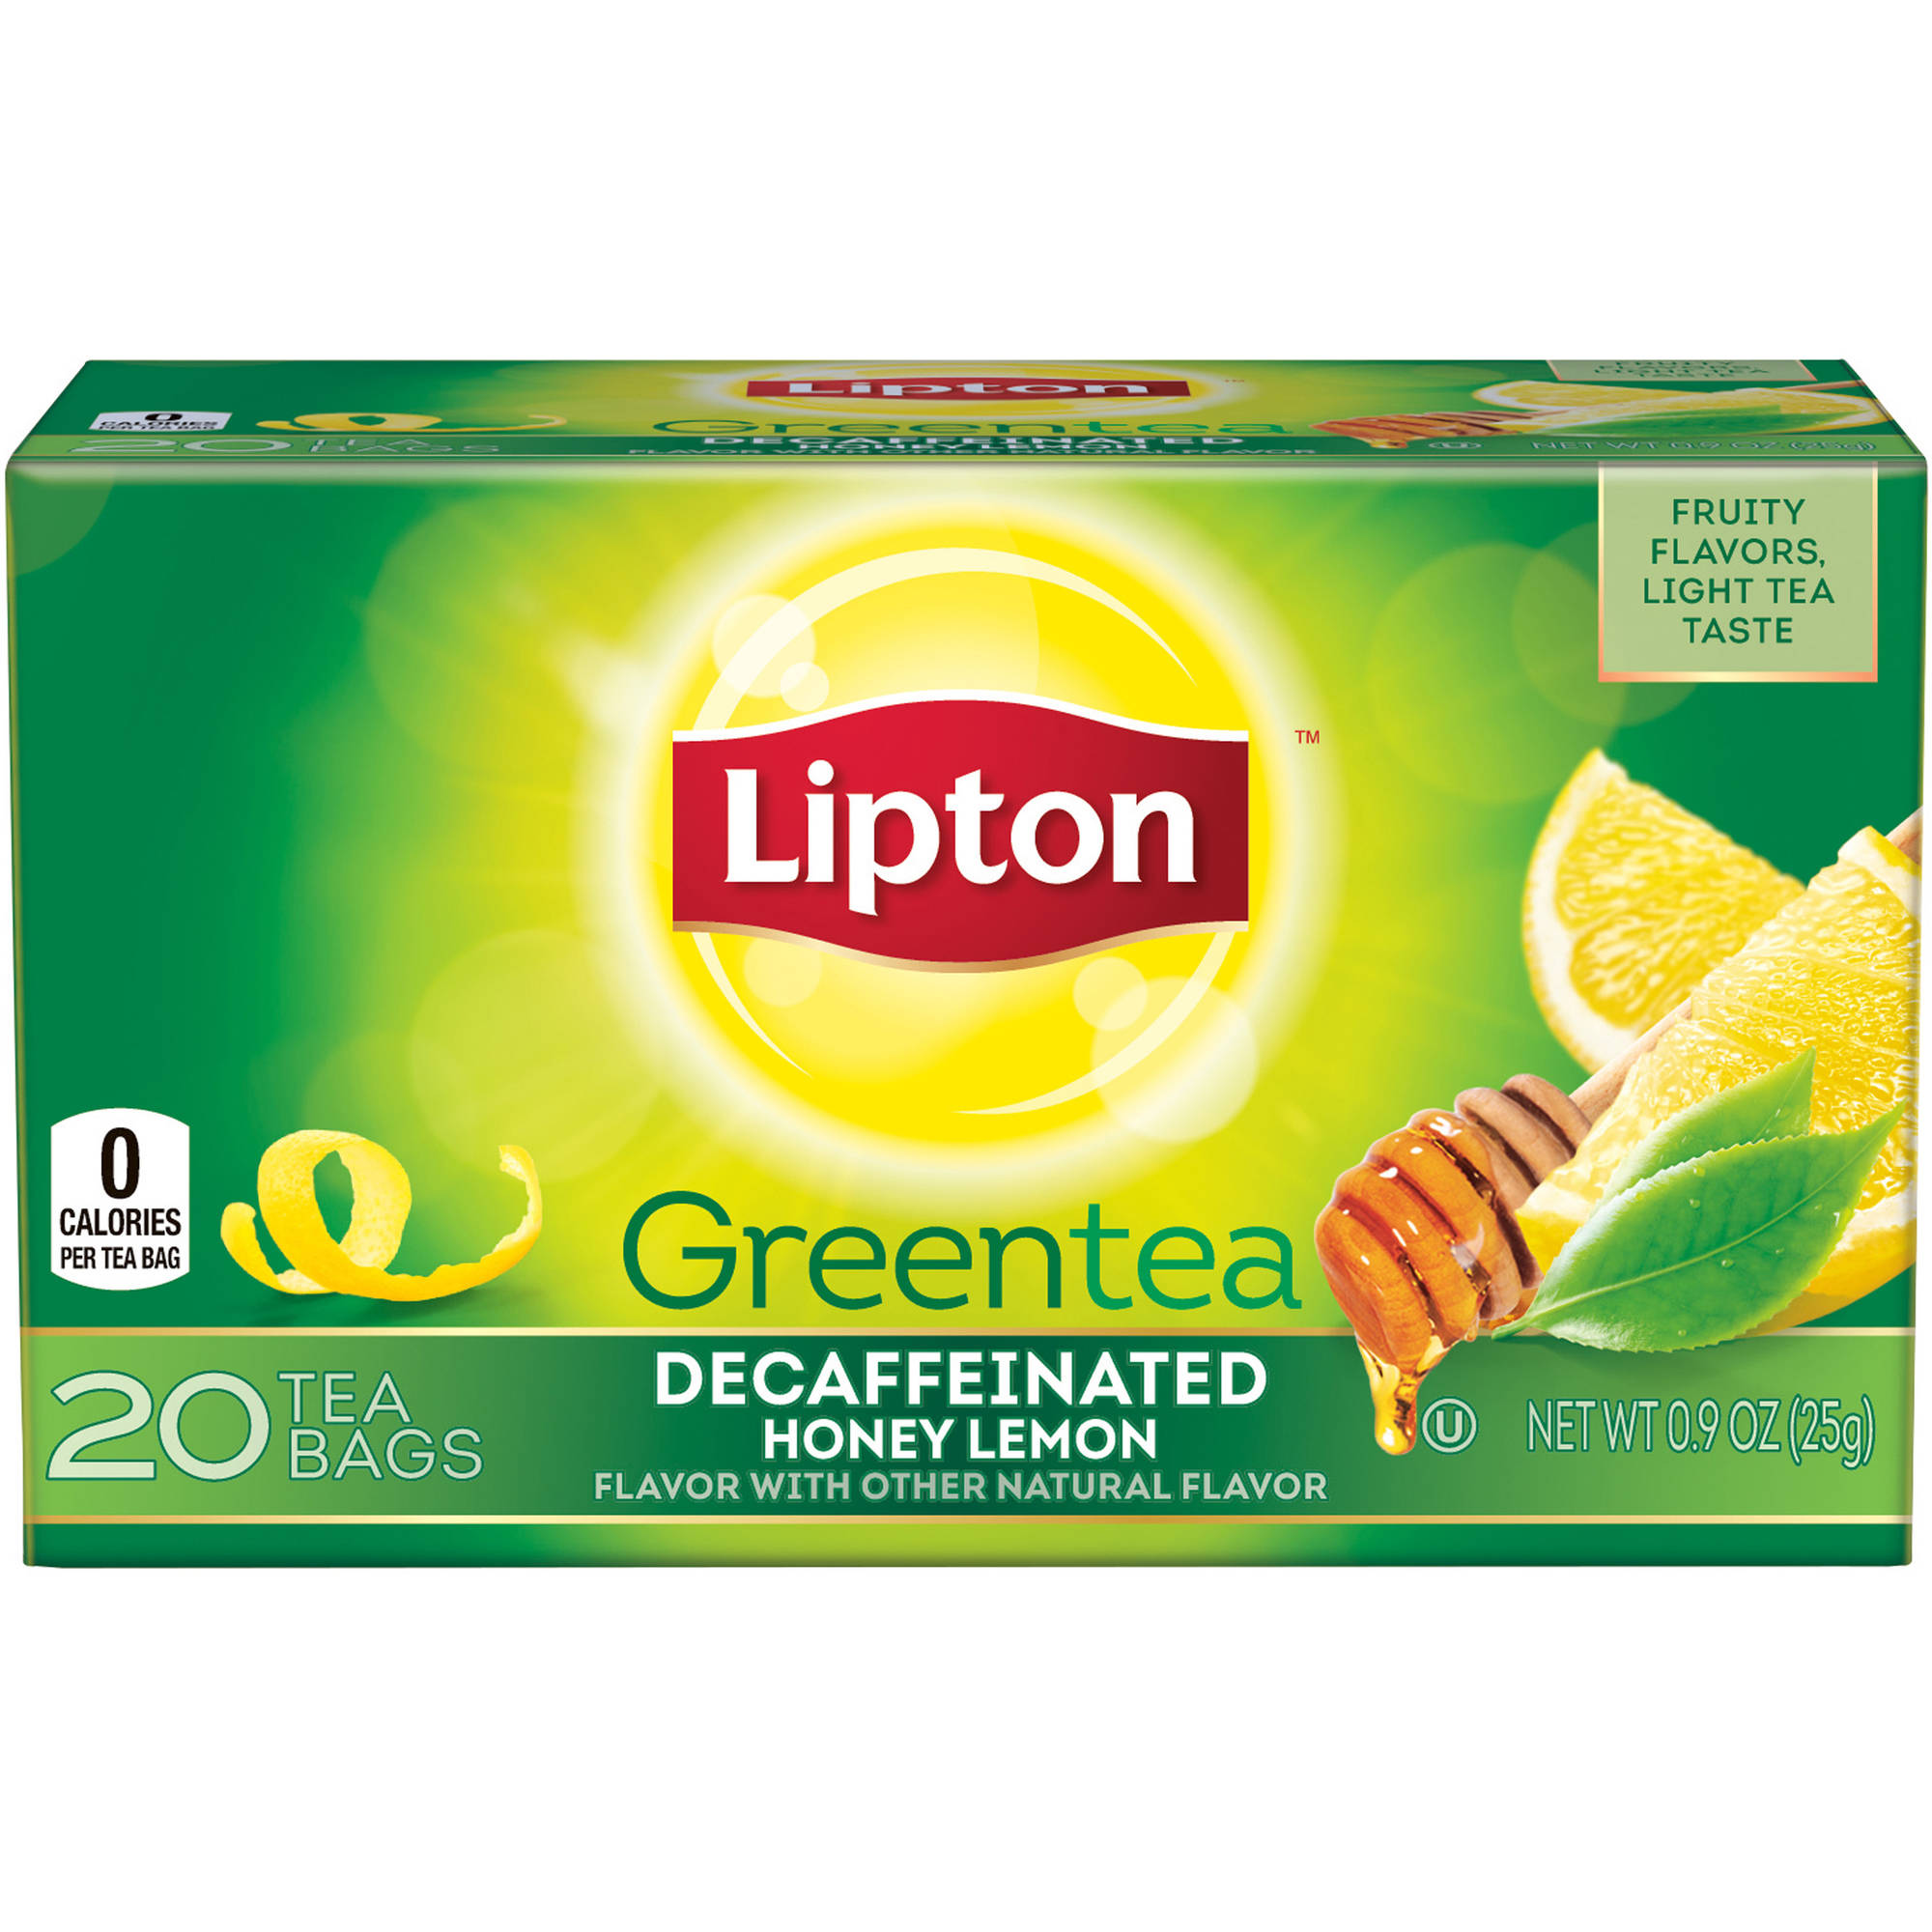 Lipton Decaffeinated Honey Lemon Green Tea Bags, 20 ct